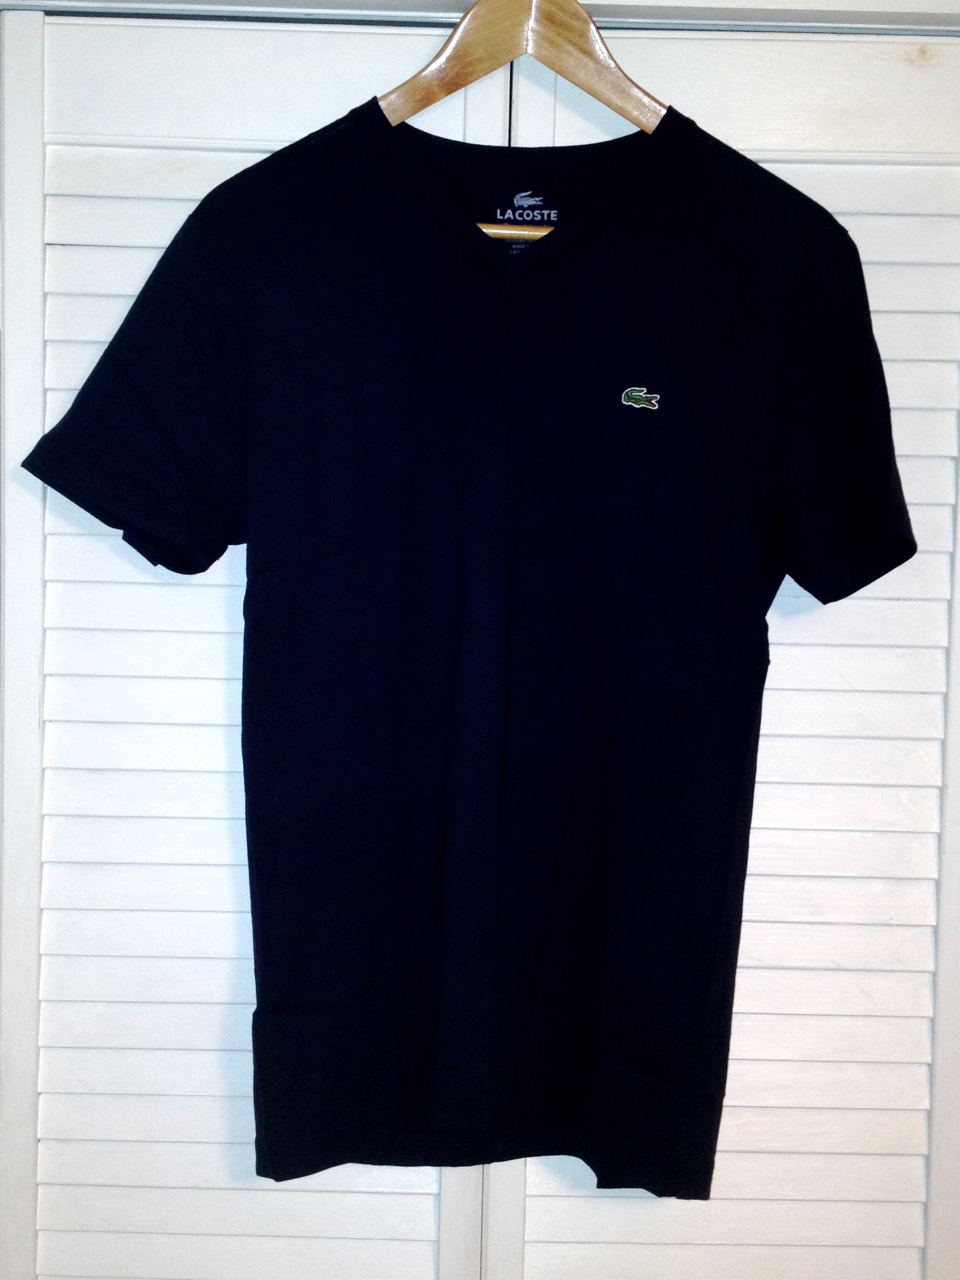 Lacoste Mens V Neck T Shirt - Marine (Navy Blue)